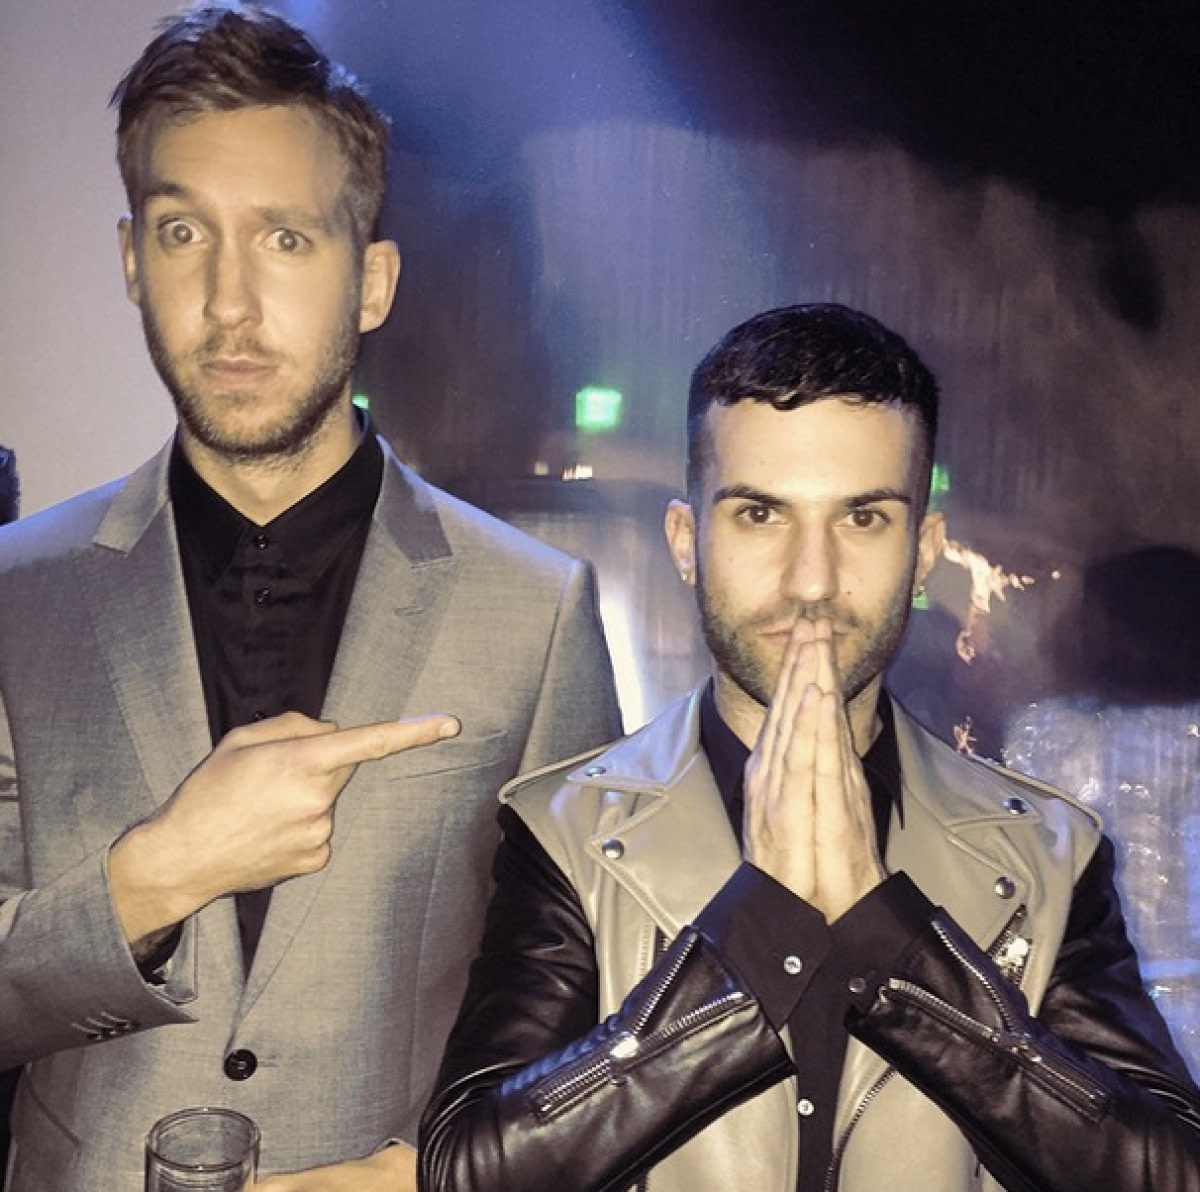 A-Trak and Calvin Harris at a bar